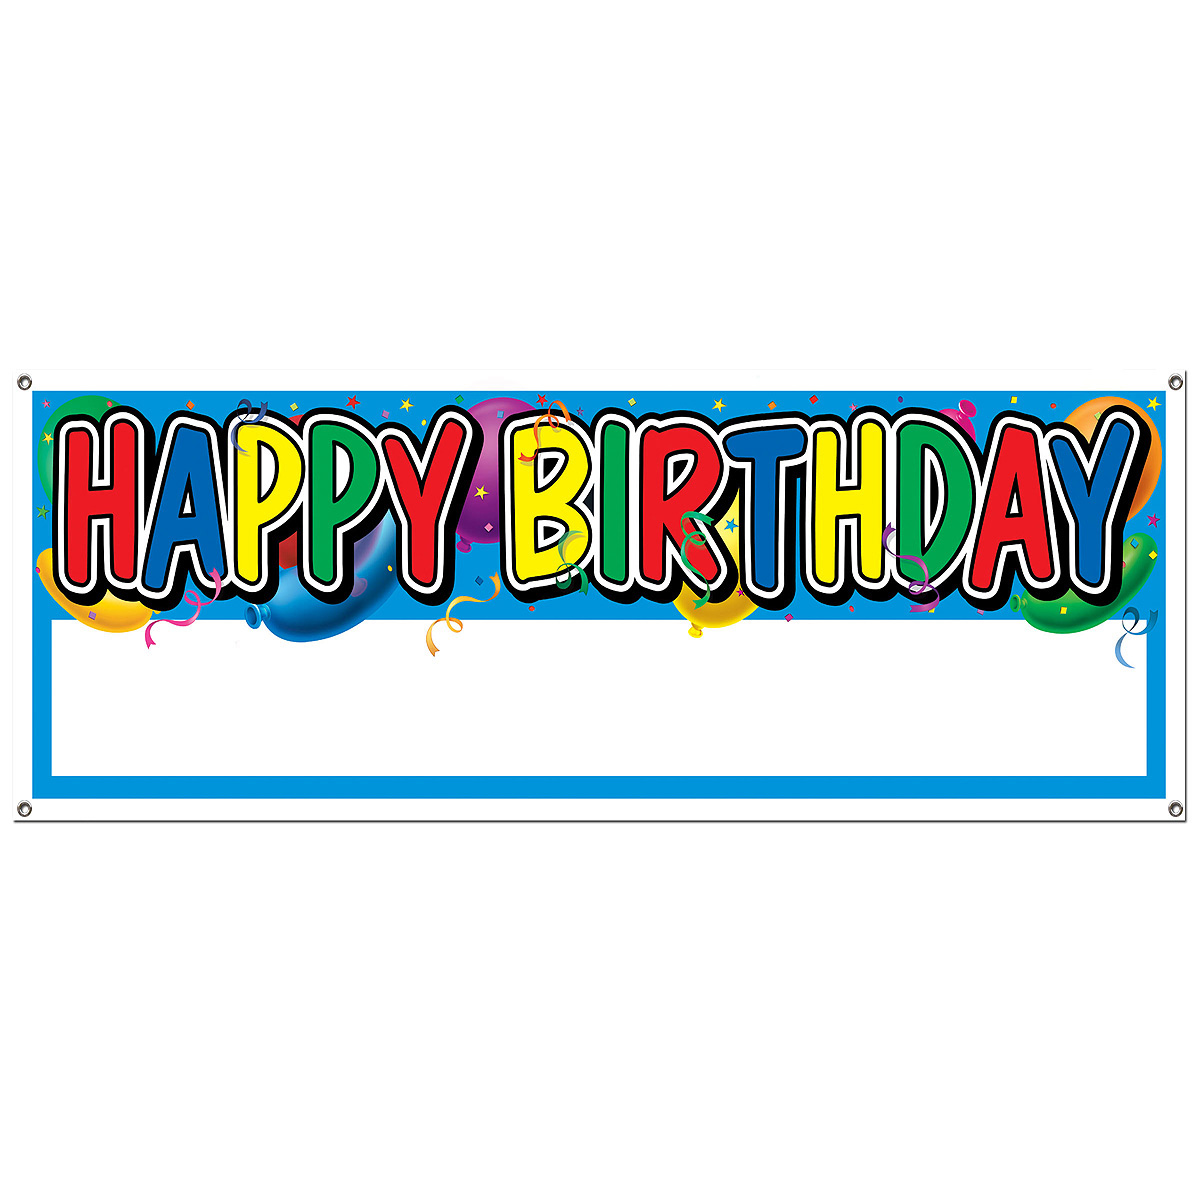 Happy Birthday Banners and Signs